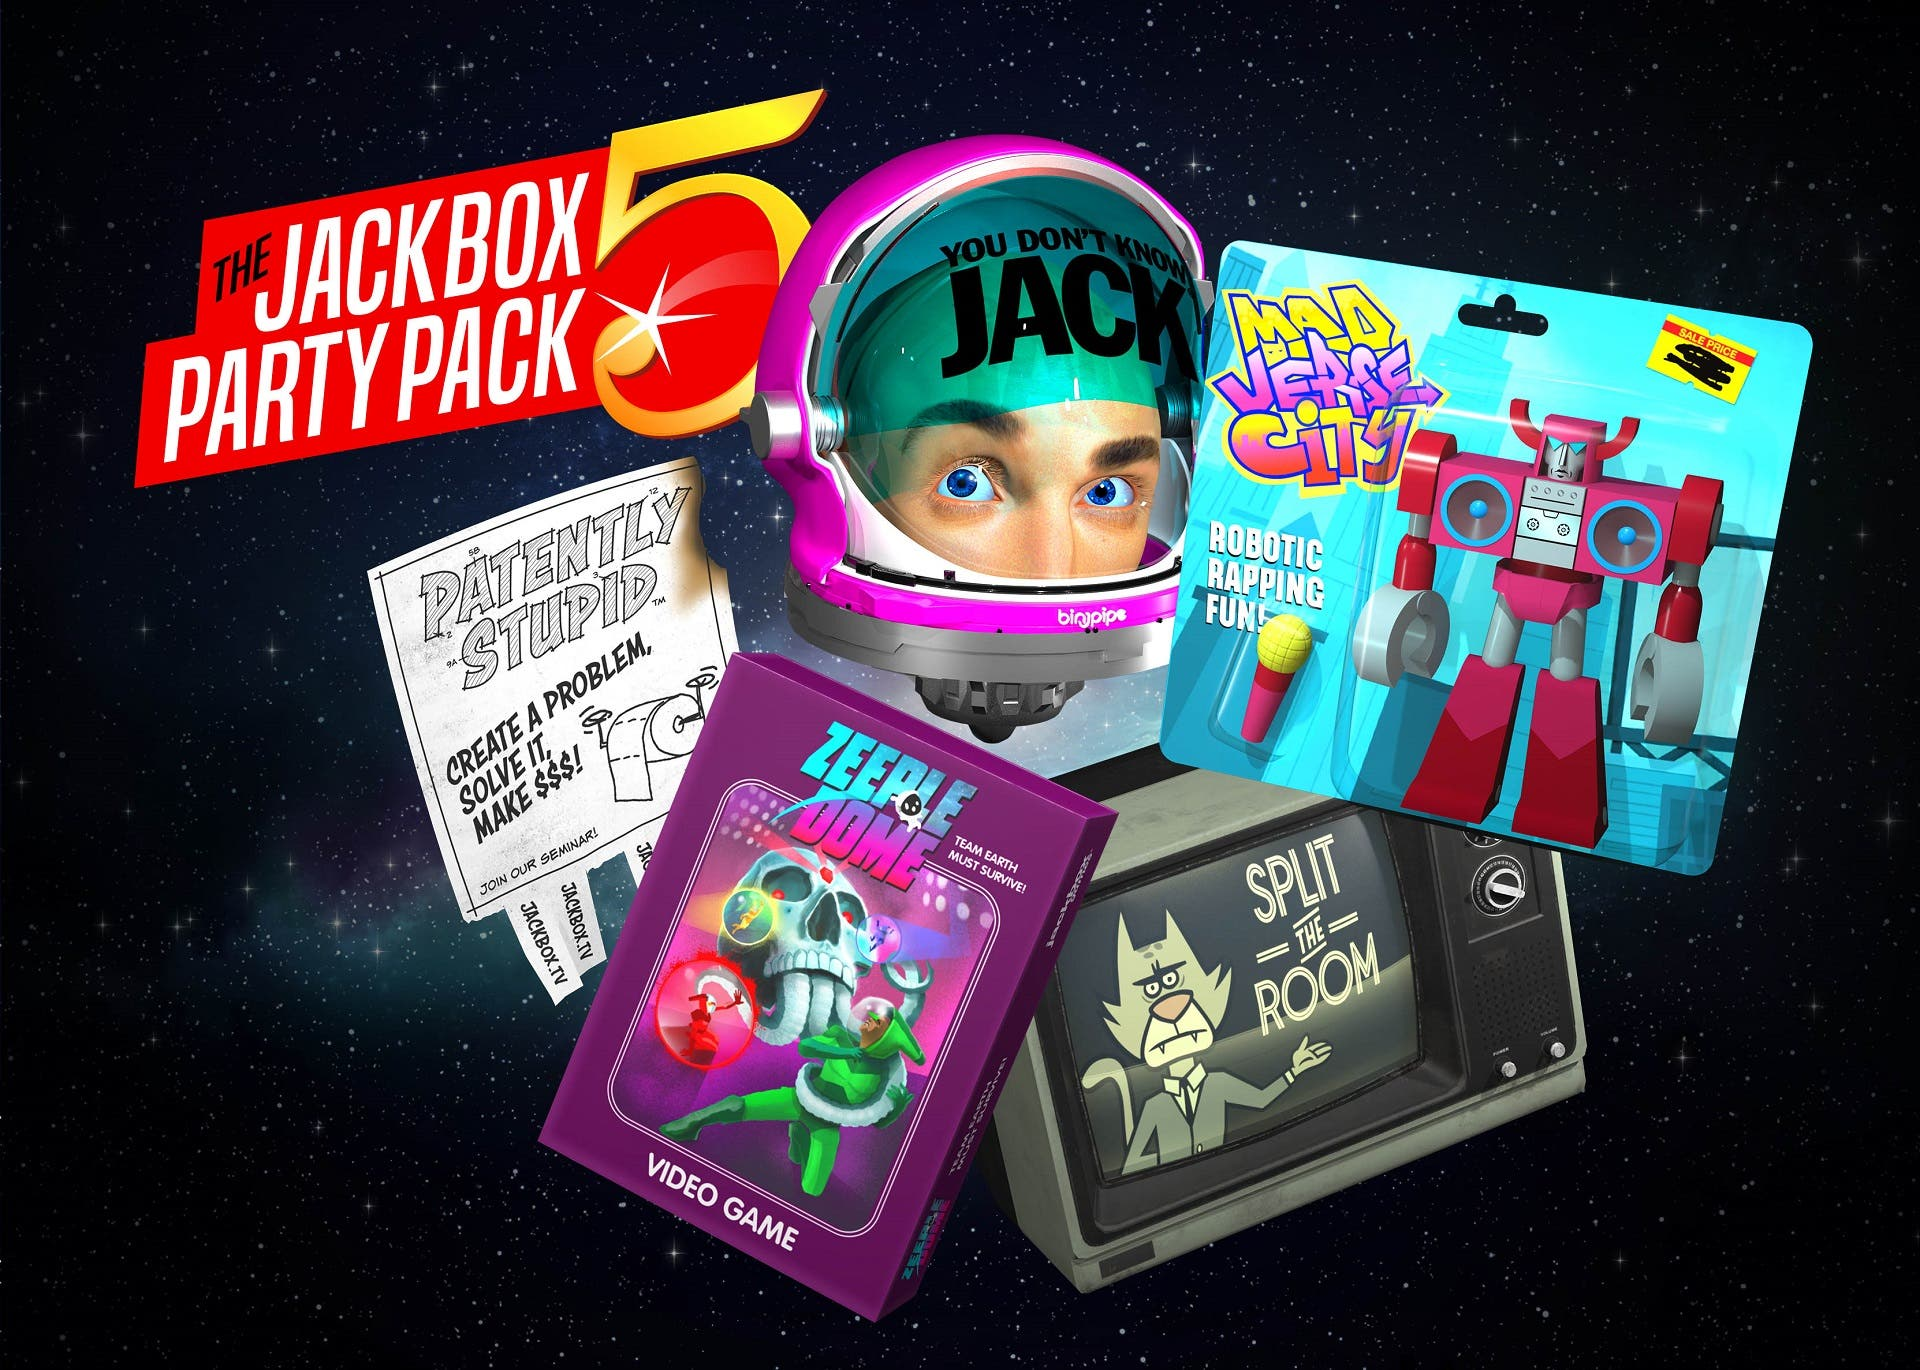 TheJackboxPartyPack5 review featured